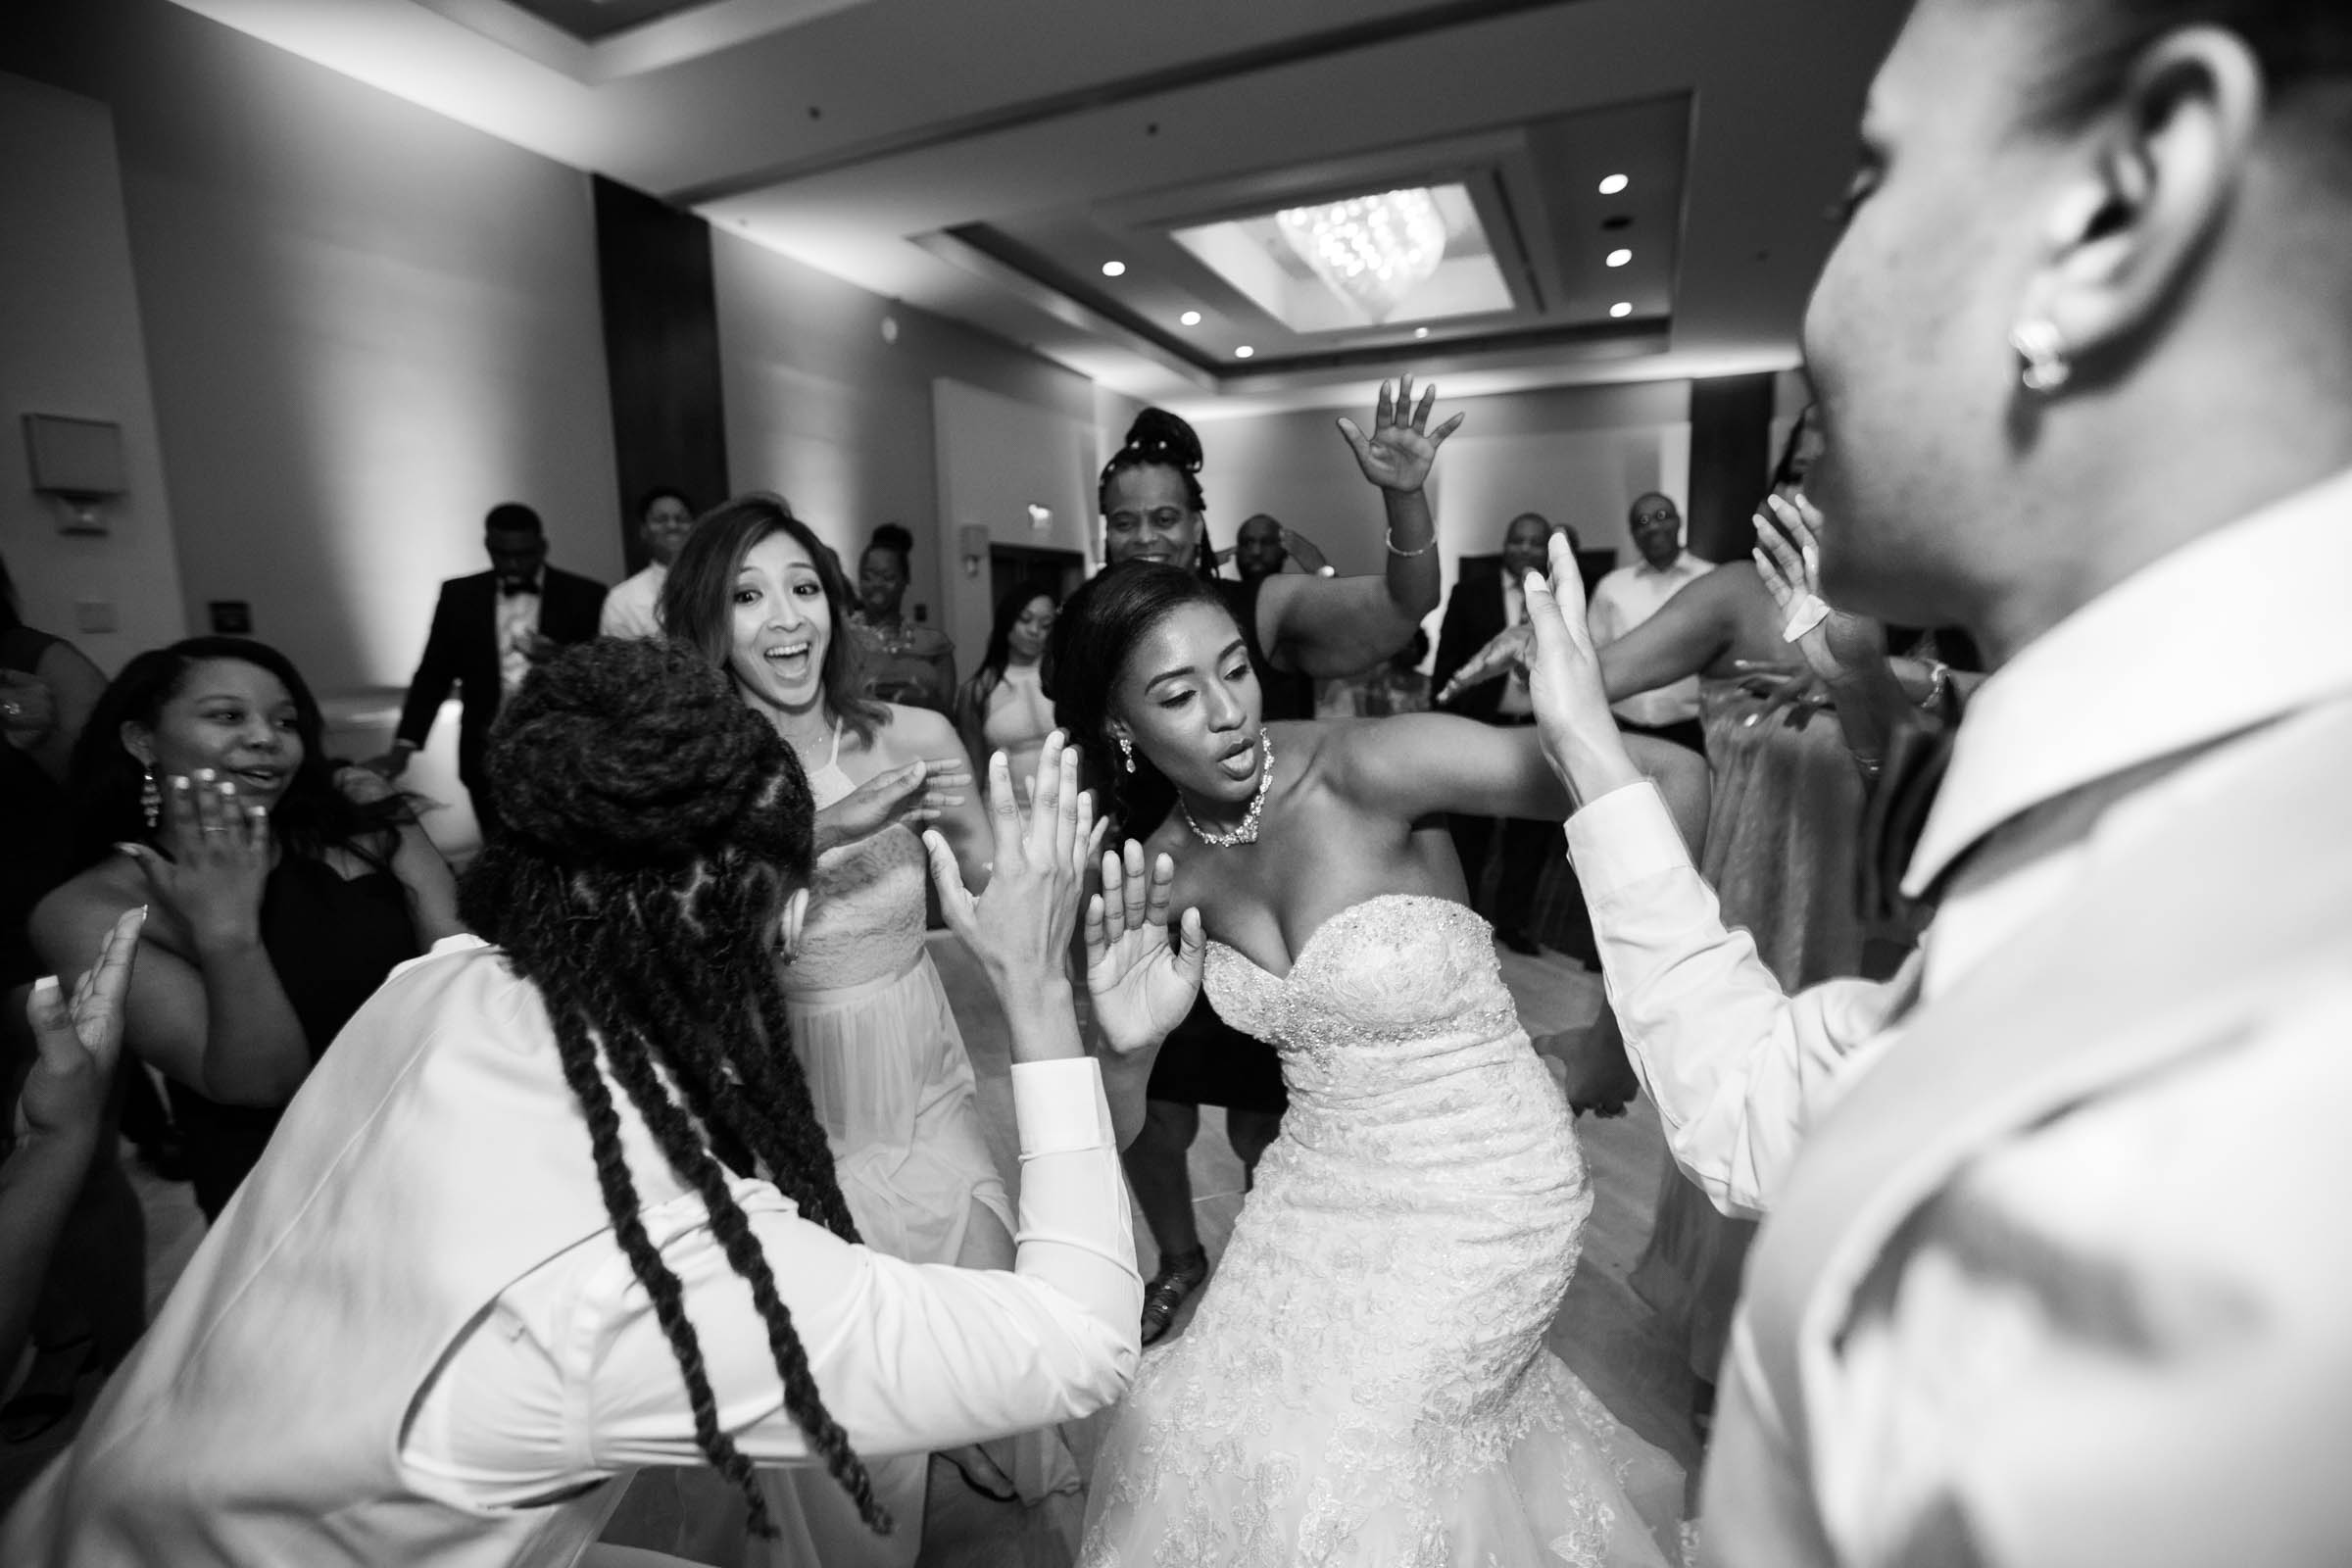 Black Bride Dream Wedding at  Hyatt Regency Fairfax Virginia Husband and Wife Wedding Photographers Megapixels Media Photography (97 of 104).jpg